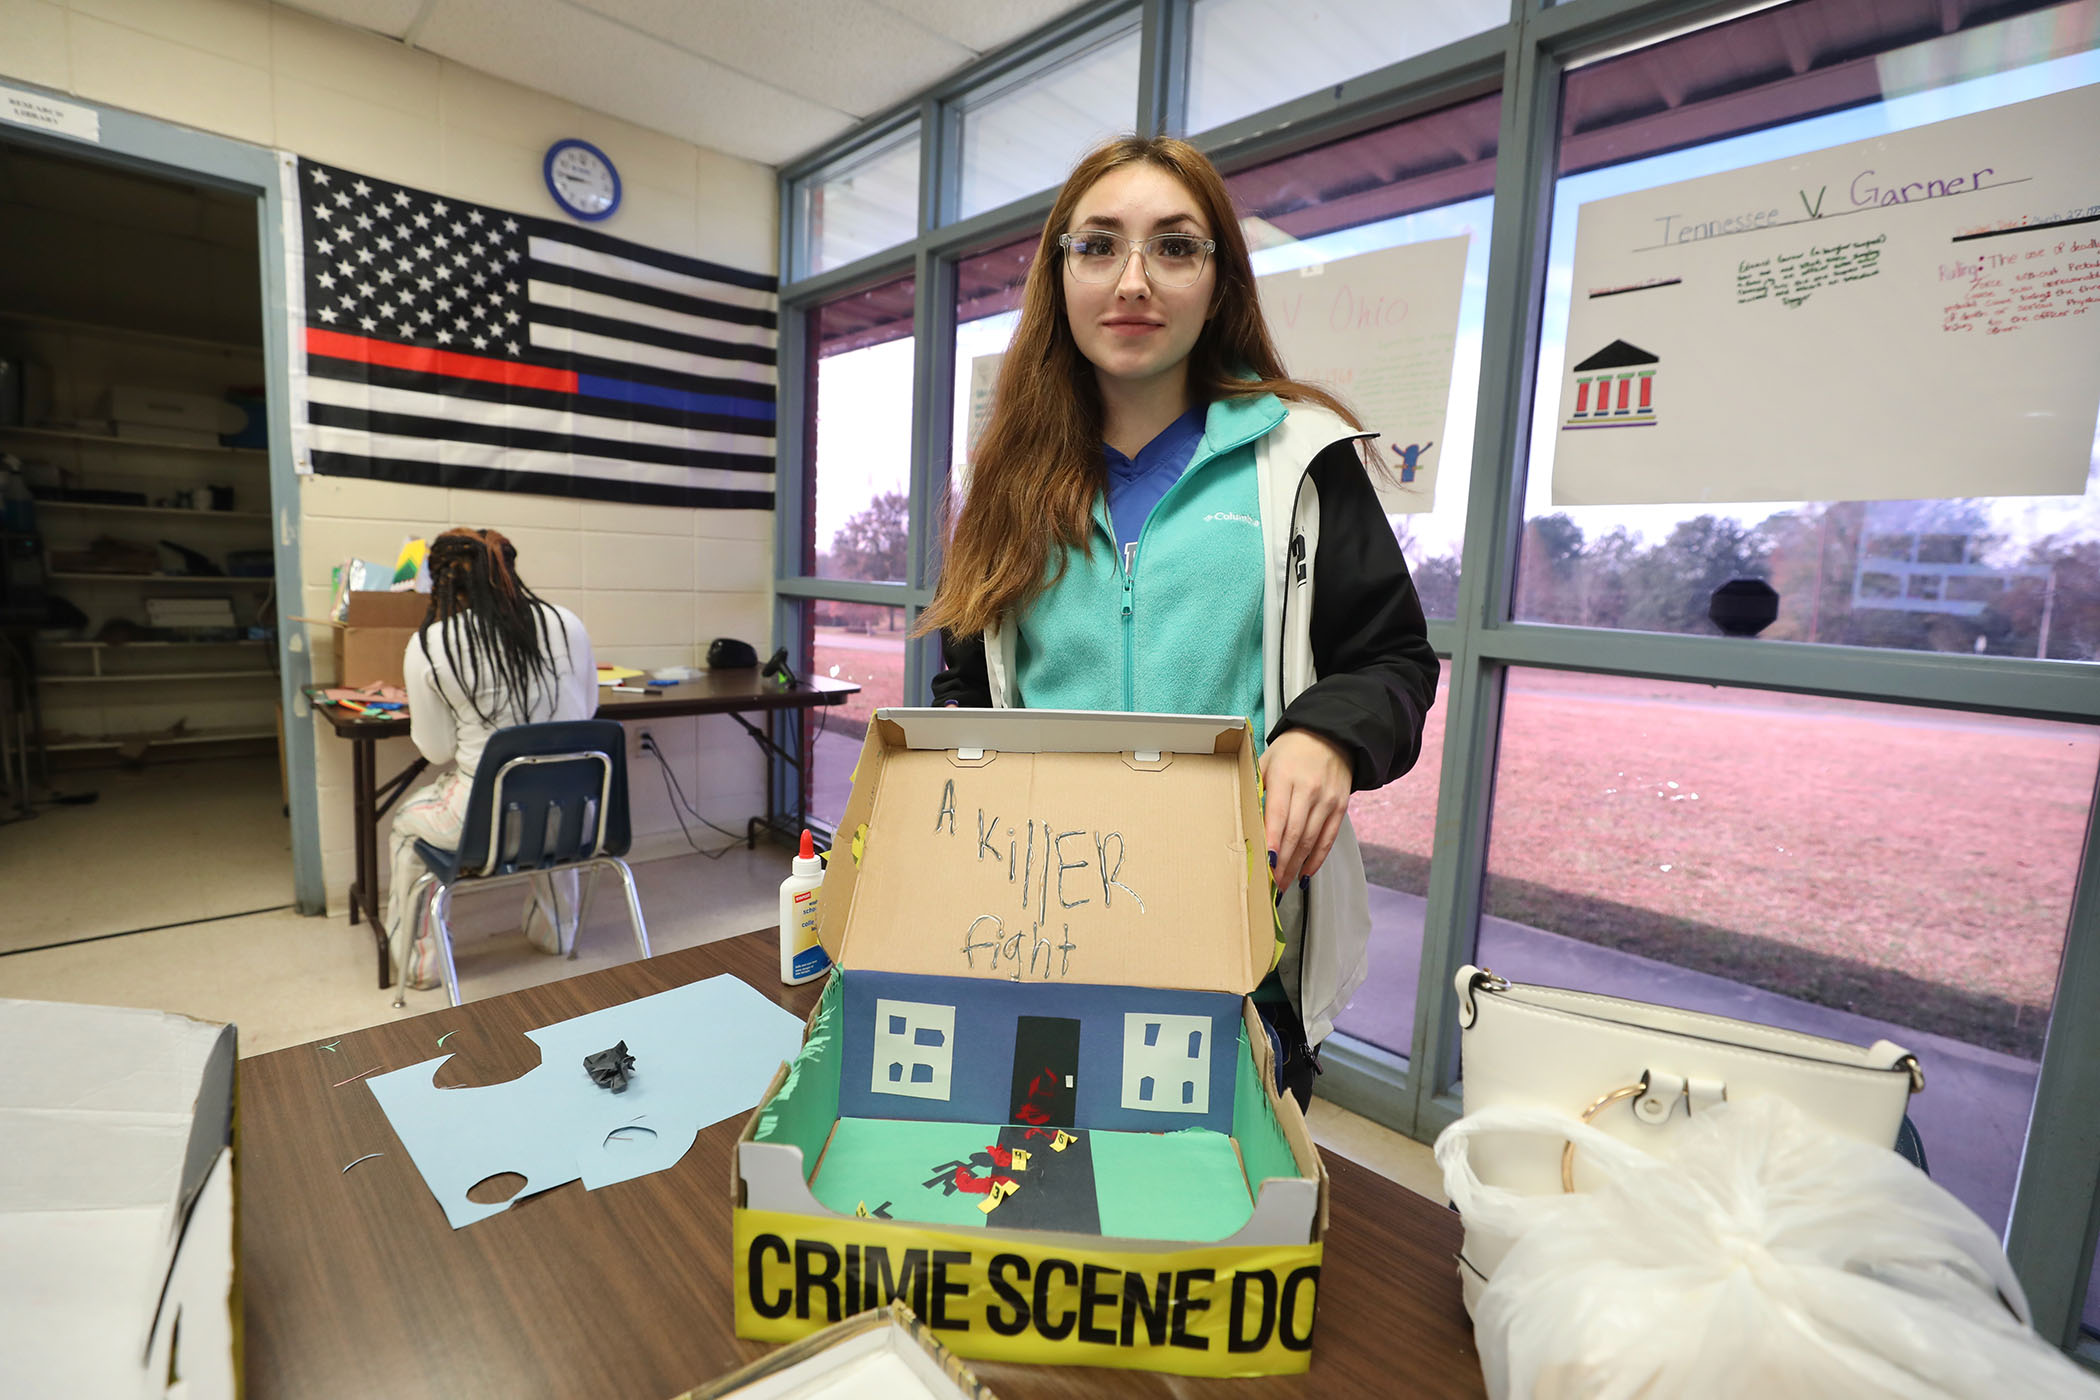 A students shows the work she has done for her CCCTC class.